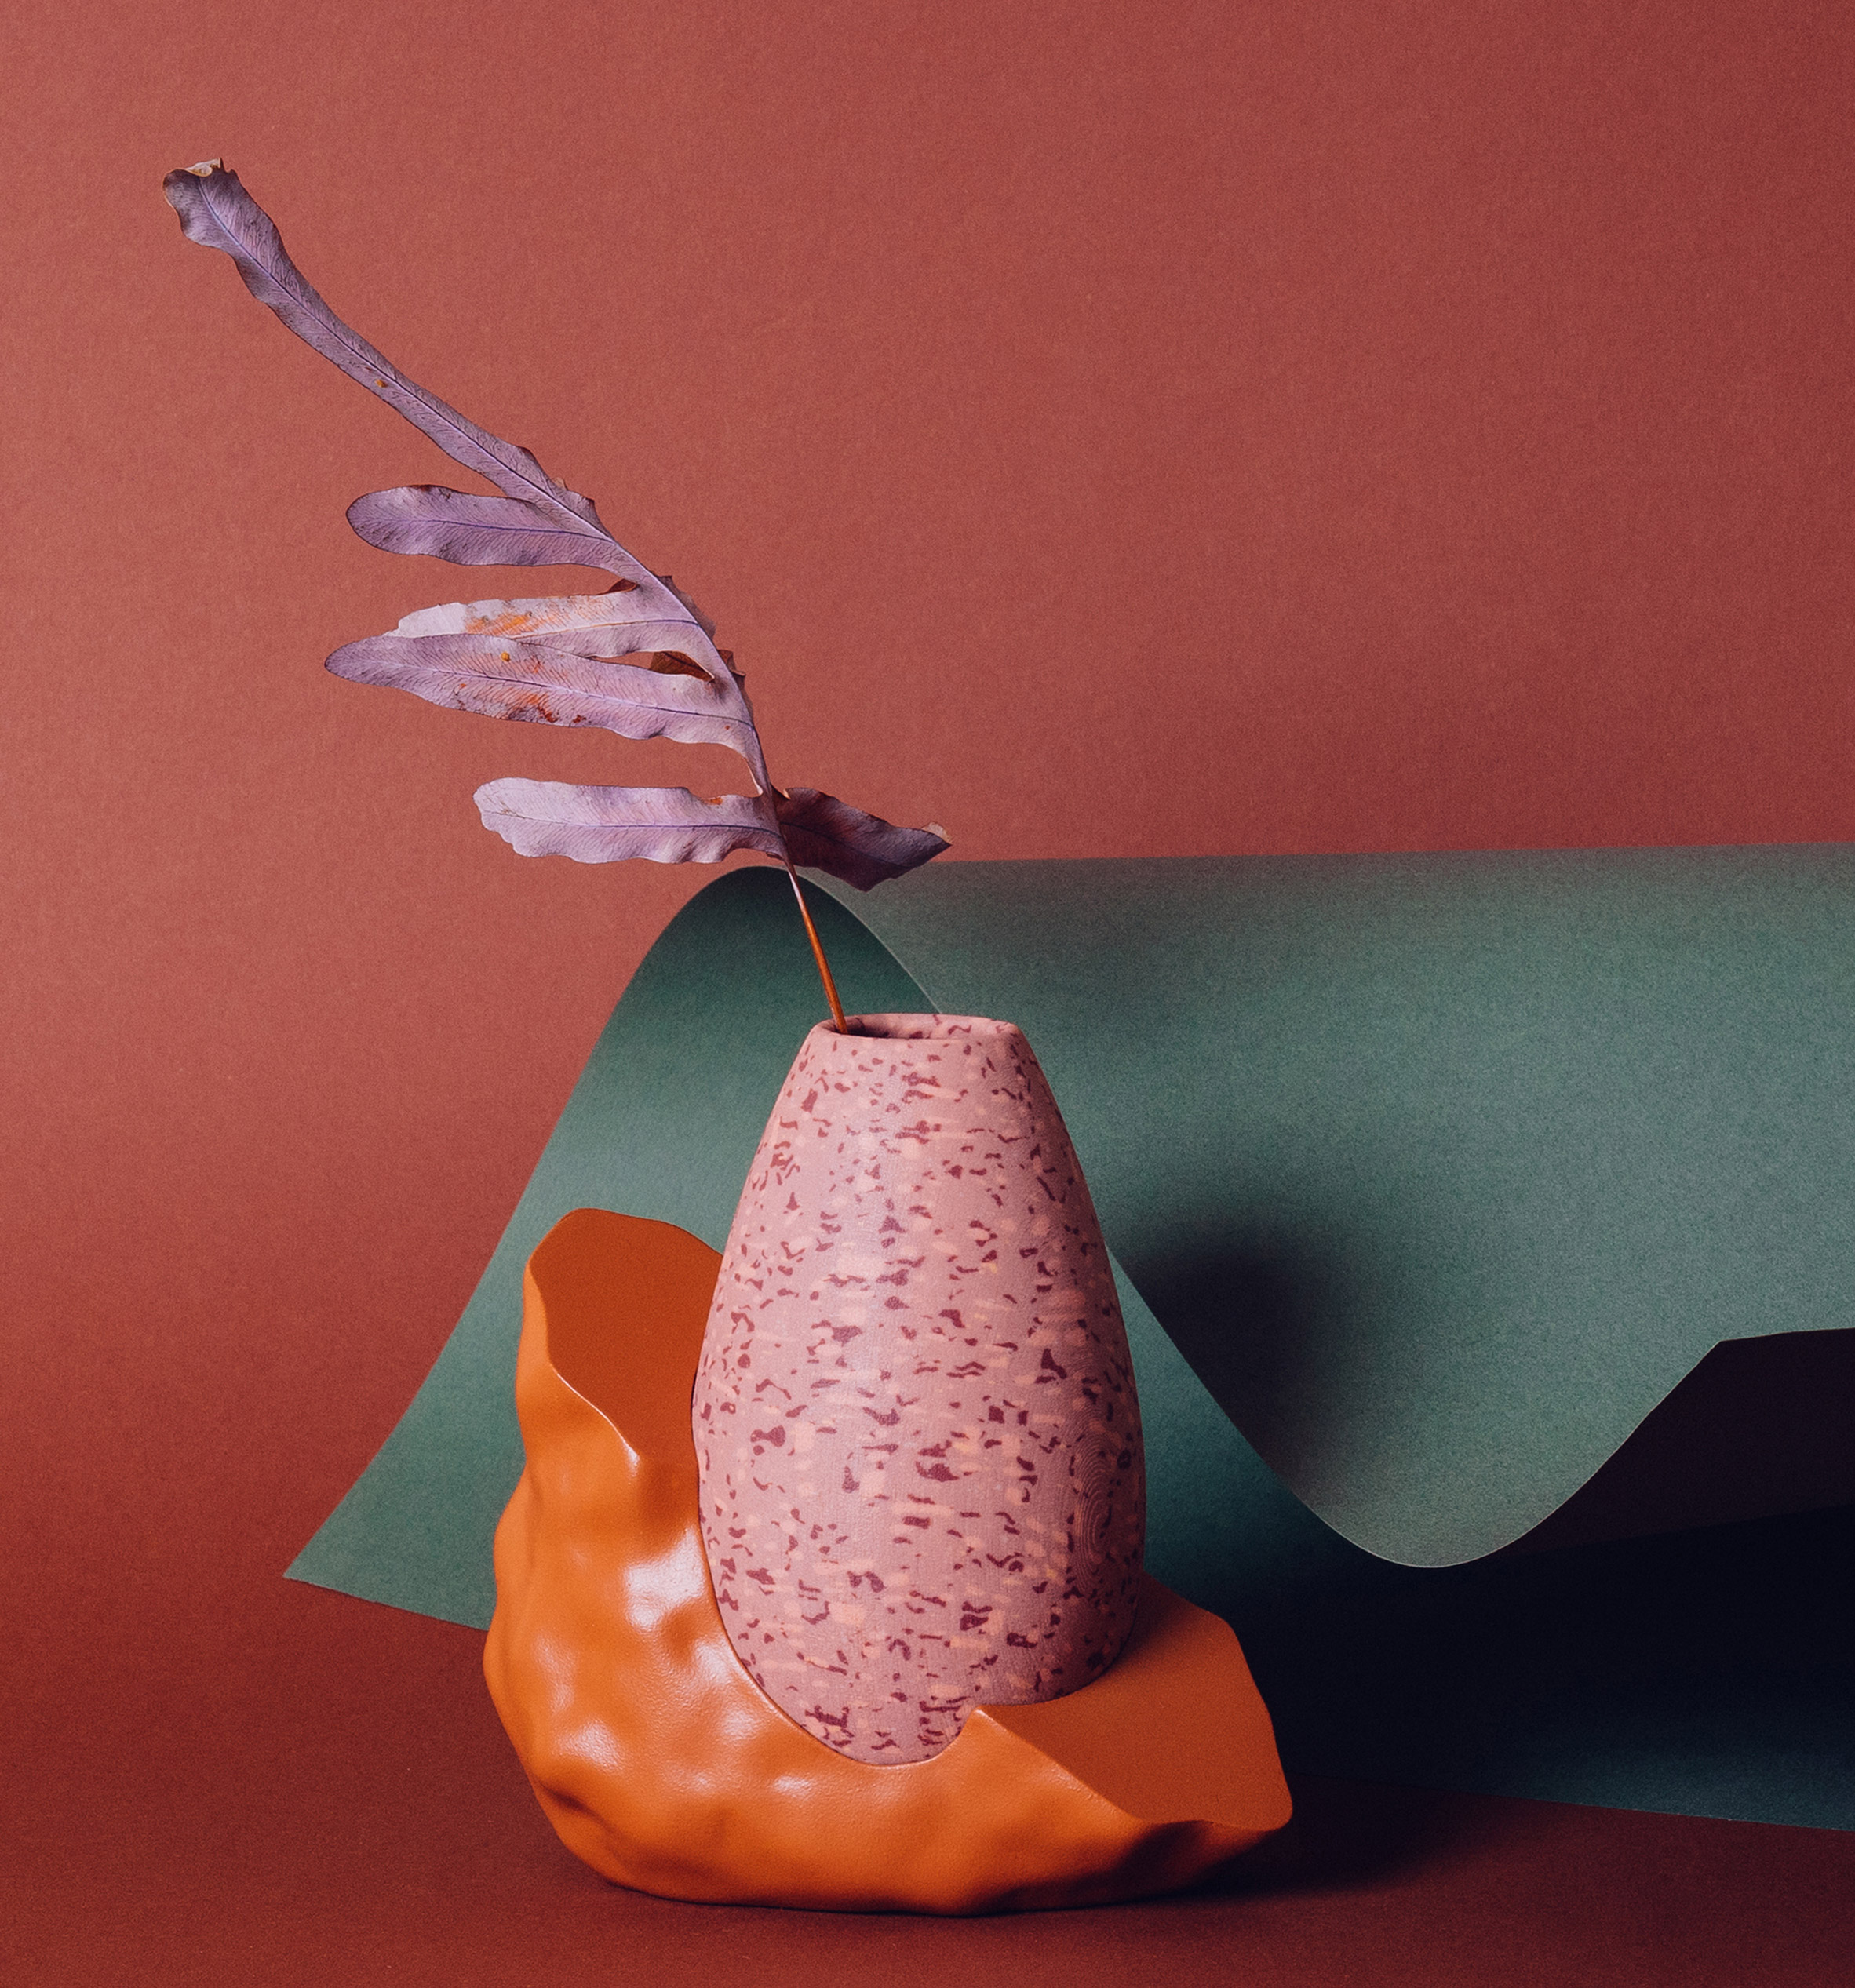 Wang & Söderström's trio of 3D-printed vases feature mottled patterns and bulbous bases